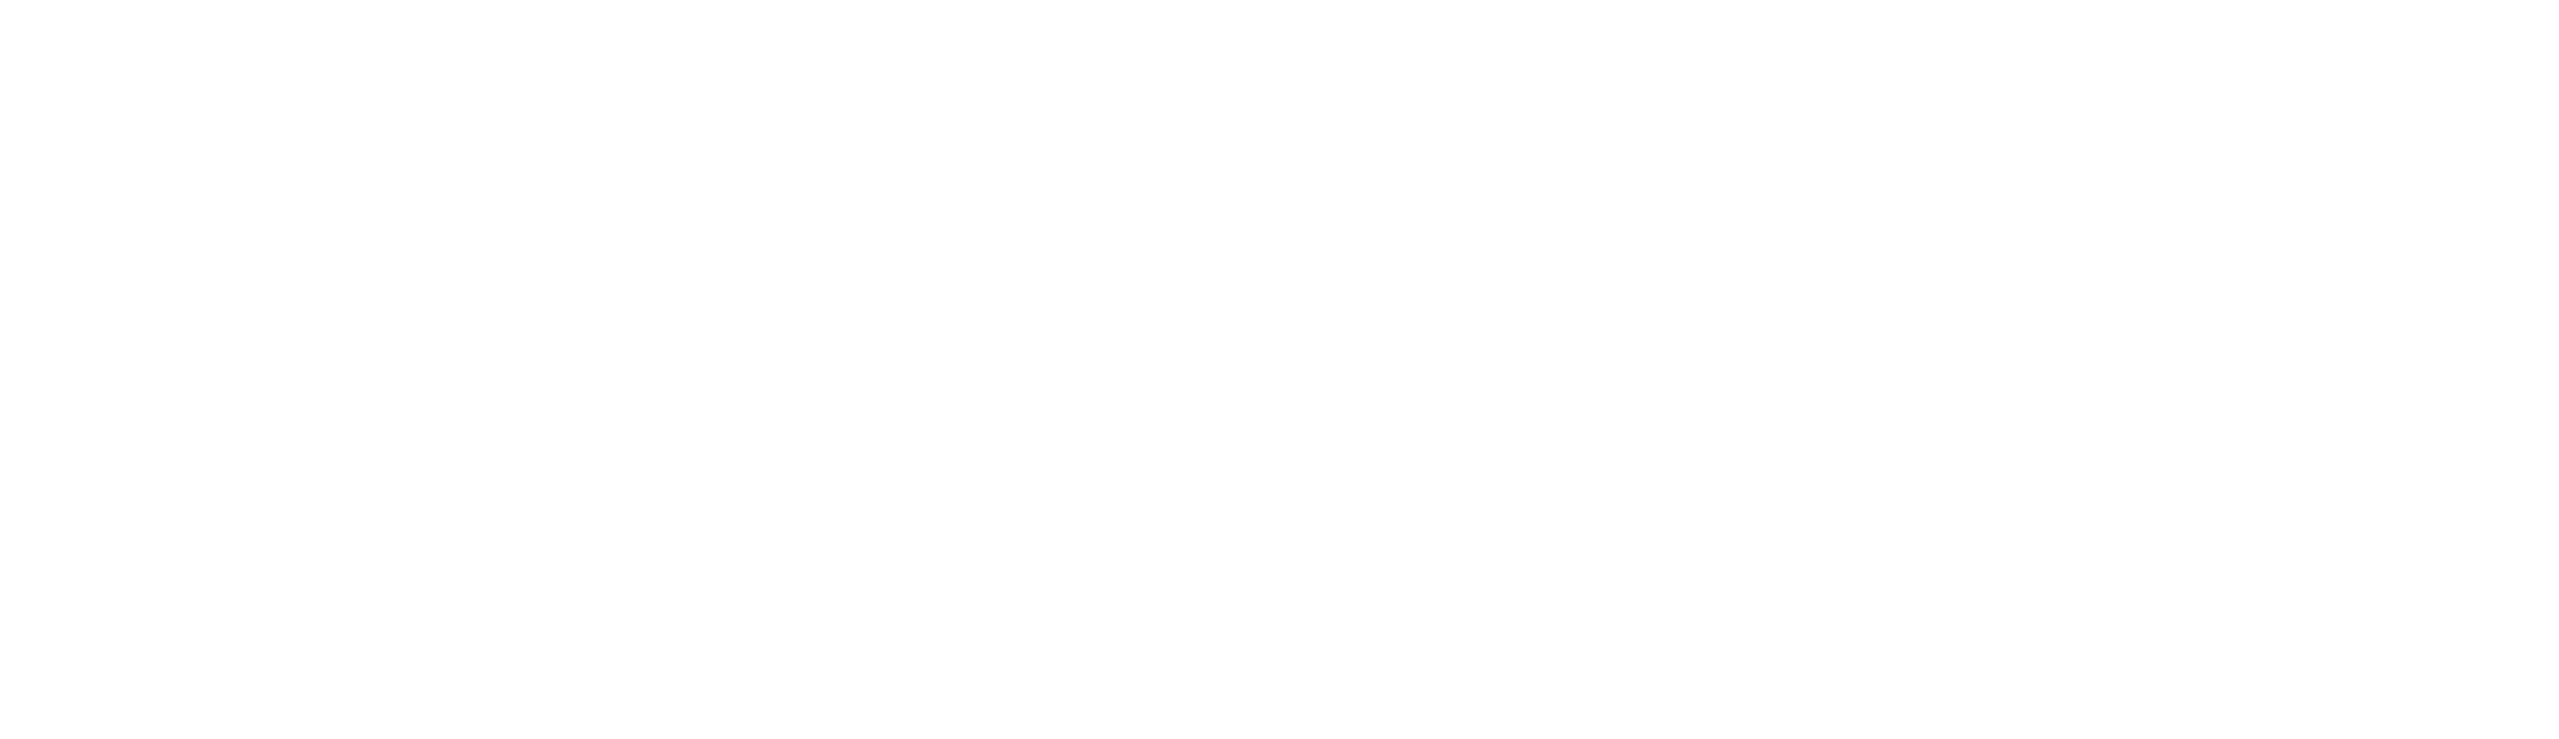 Documentary Wedding Photography | Stephen Grigoriou